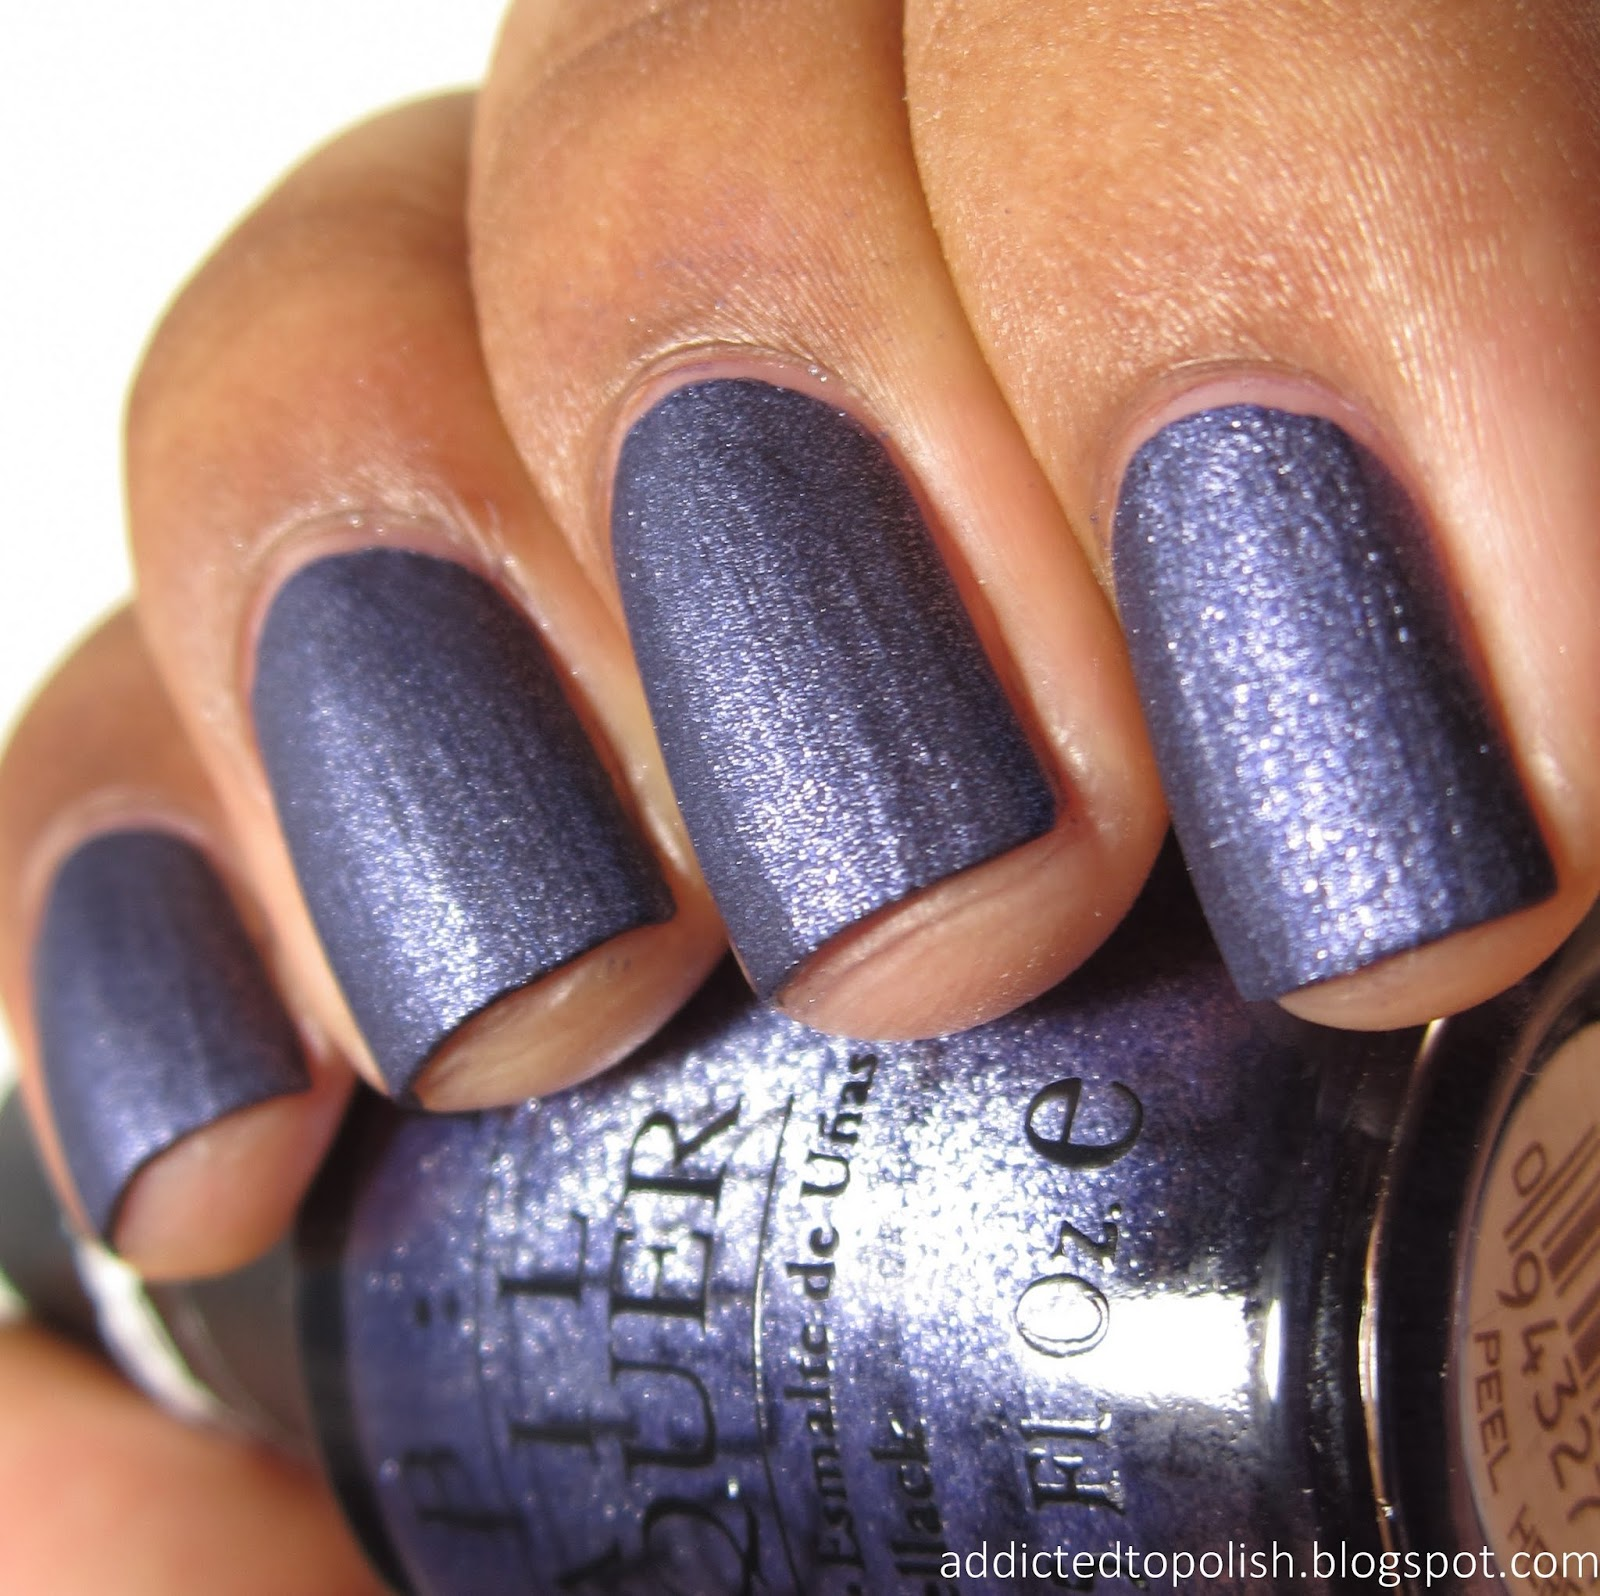 Addicted to Polish: OPI Ink Suede